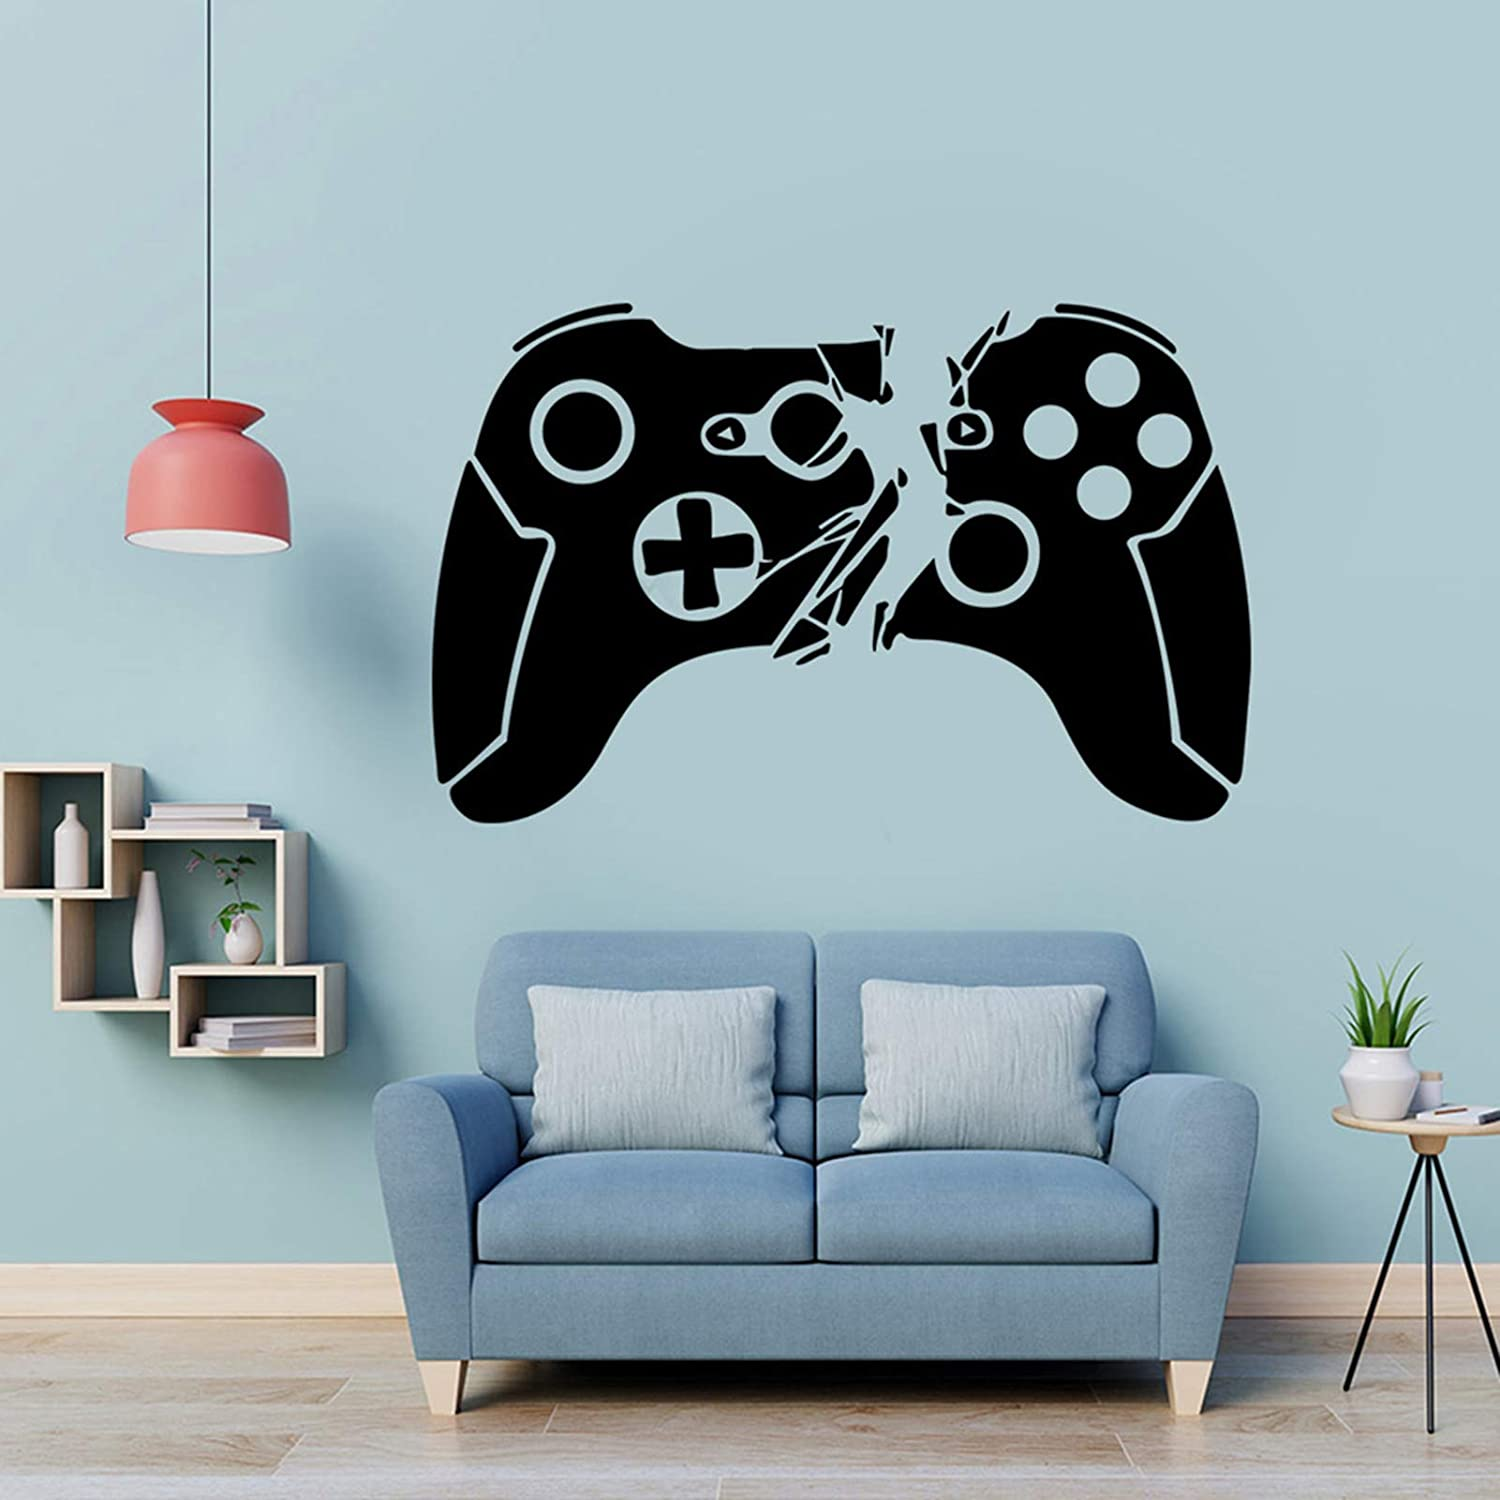 Game Controller Wall Sticker Video Game Wall Decals for Boys Kids Room, Creative Gaming Wall Posters Removable Wallpaper for Bedroom Playroom